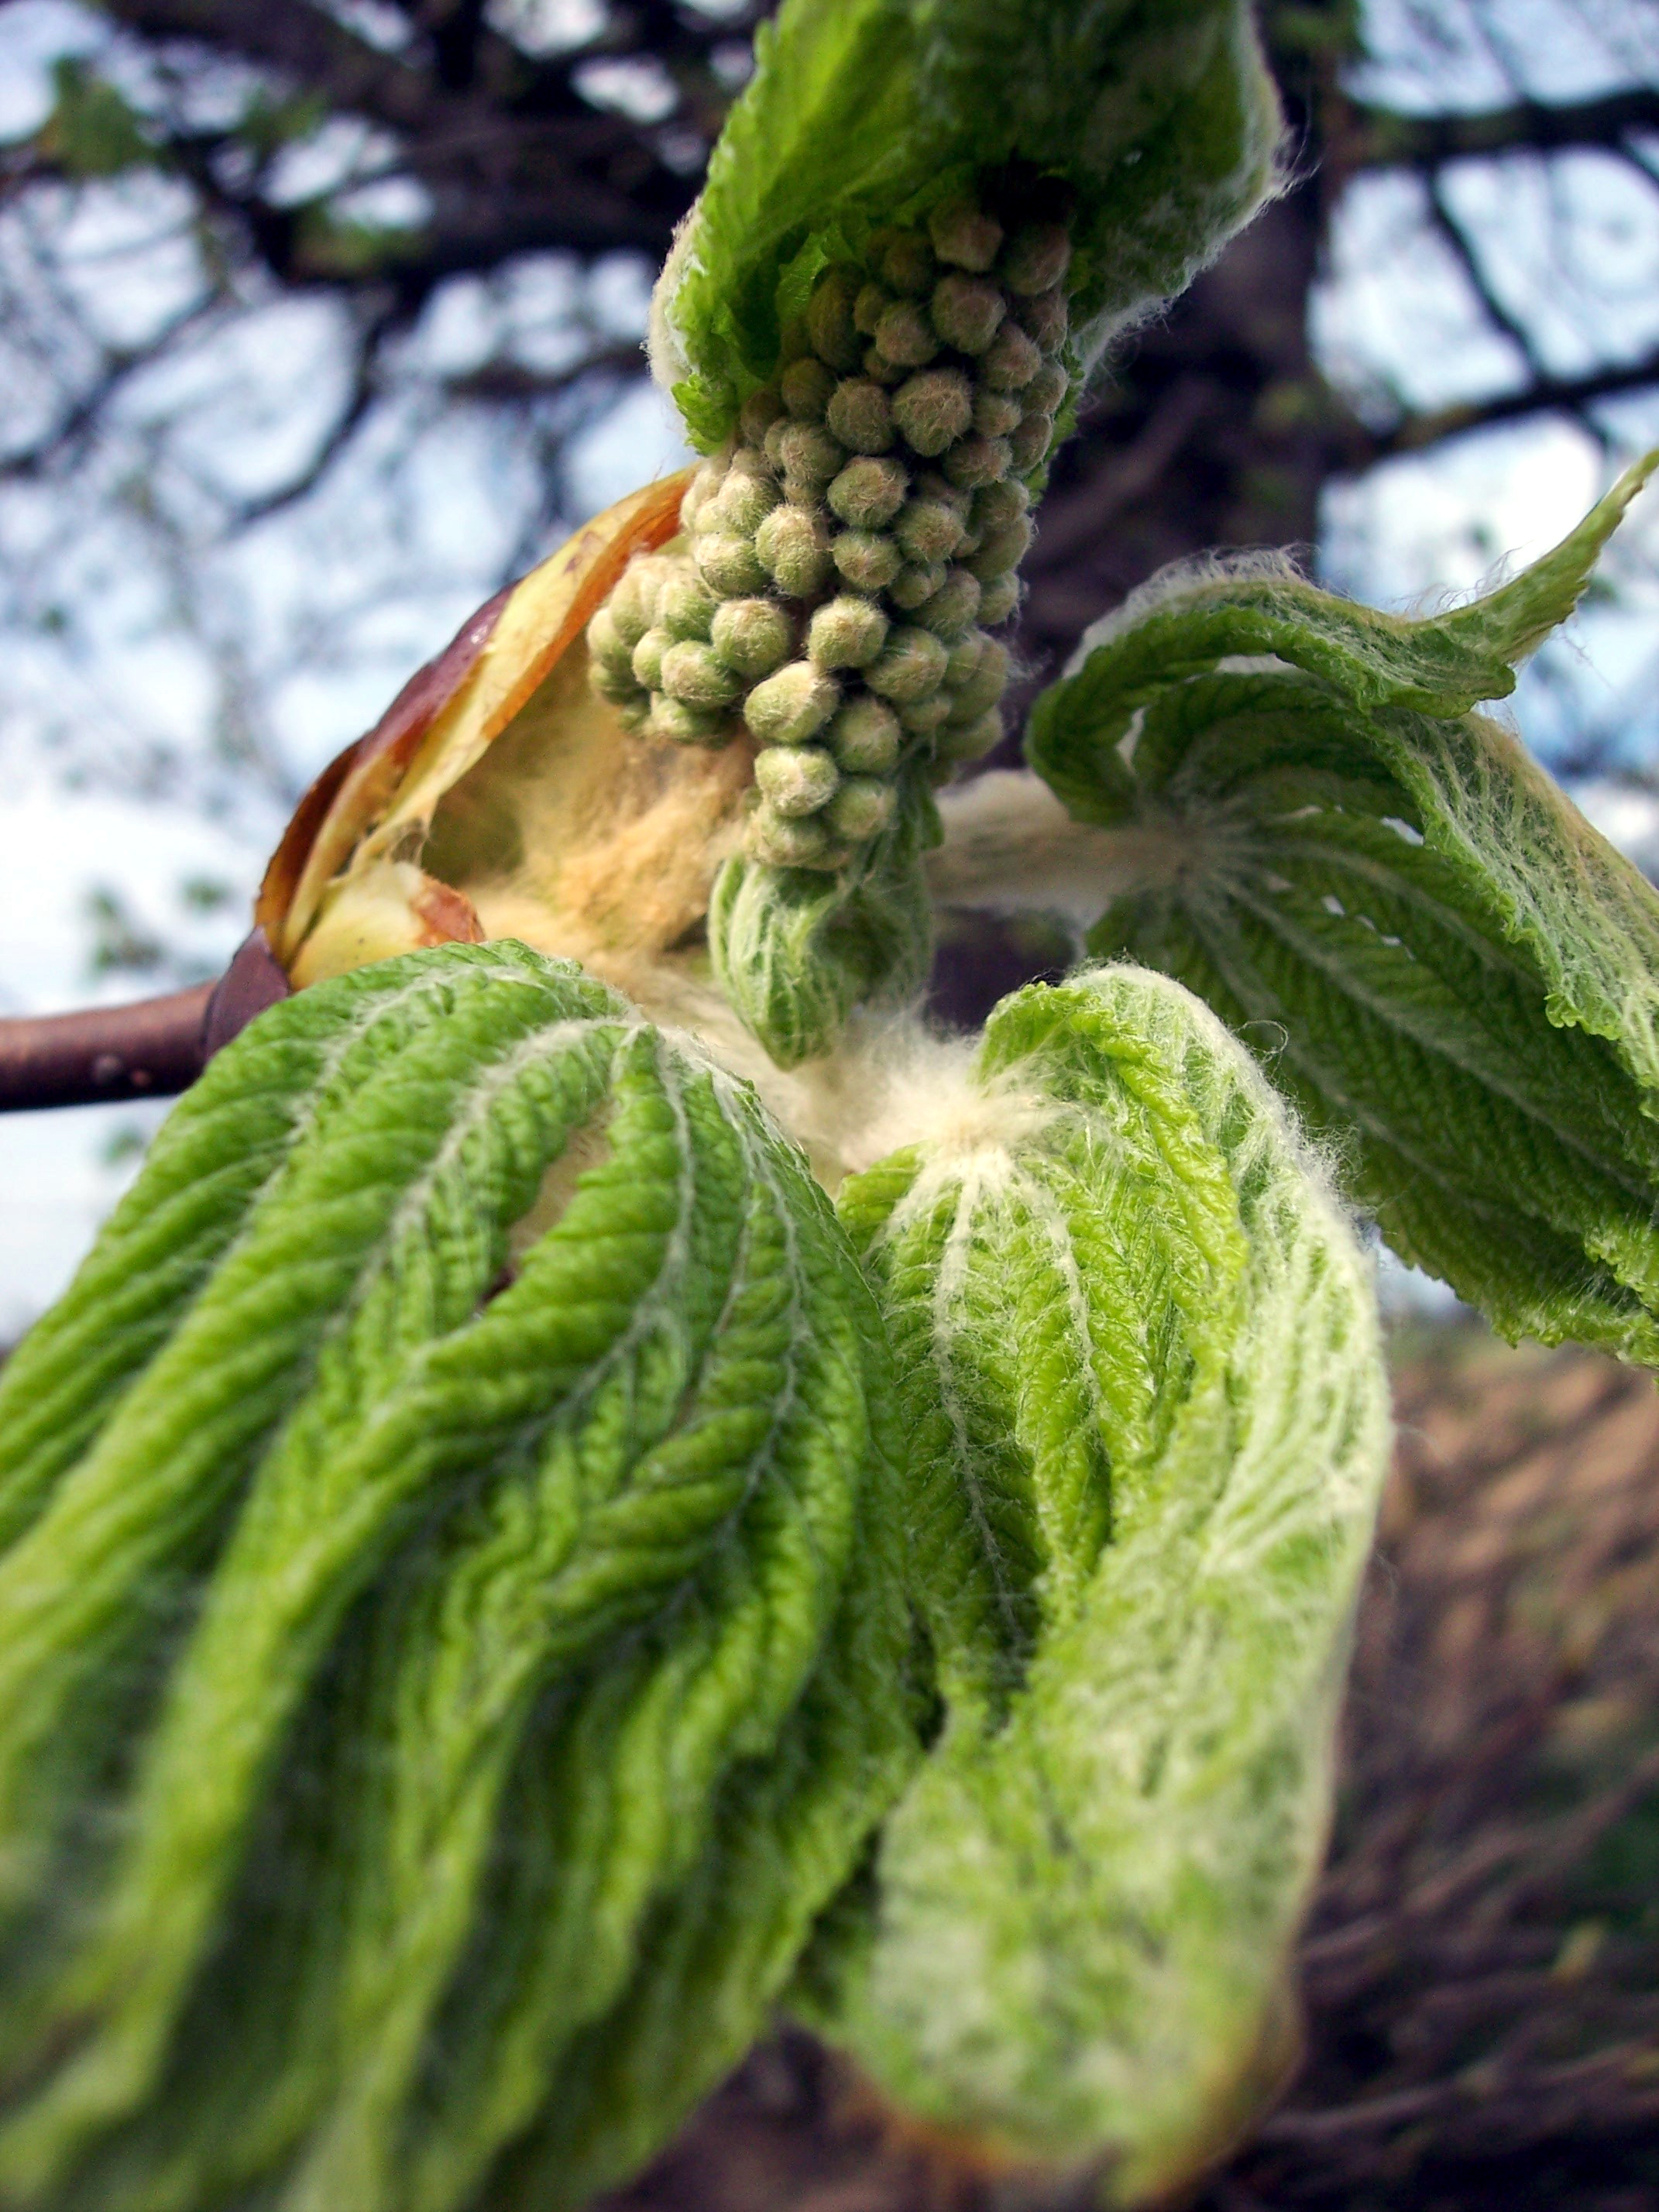 Here the leaves are unfolding to show the developing flowers. Horse-chestnut is a deciduous tree with dark grey-brown bark and palmate leaves (divided into 5-7 leaflets). It flowers May - June, each flower has four white petals. In late summer/early autumn it produces globular geen prickly fruits wh...